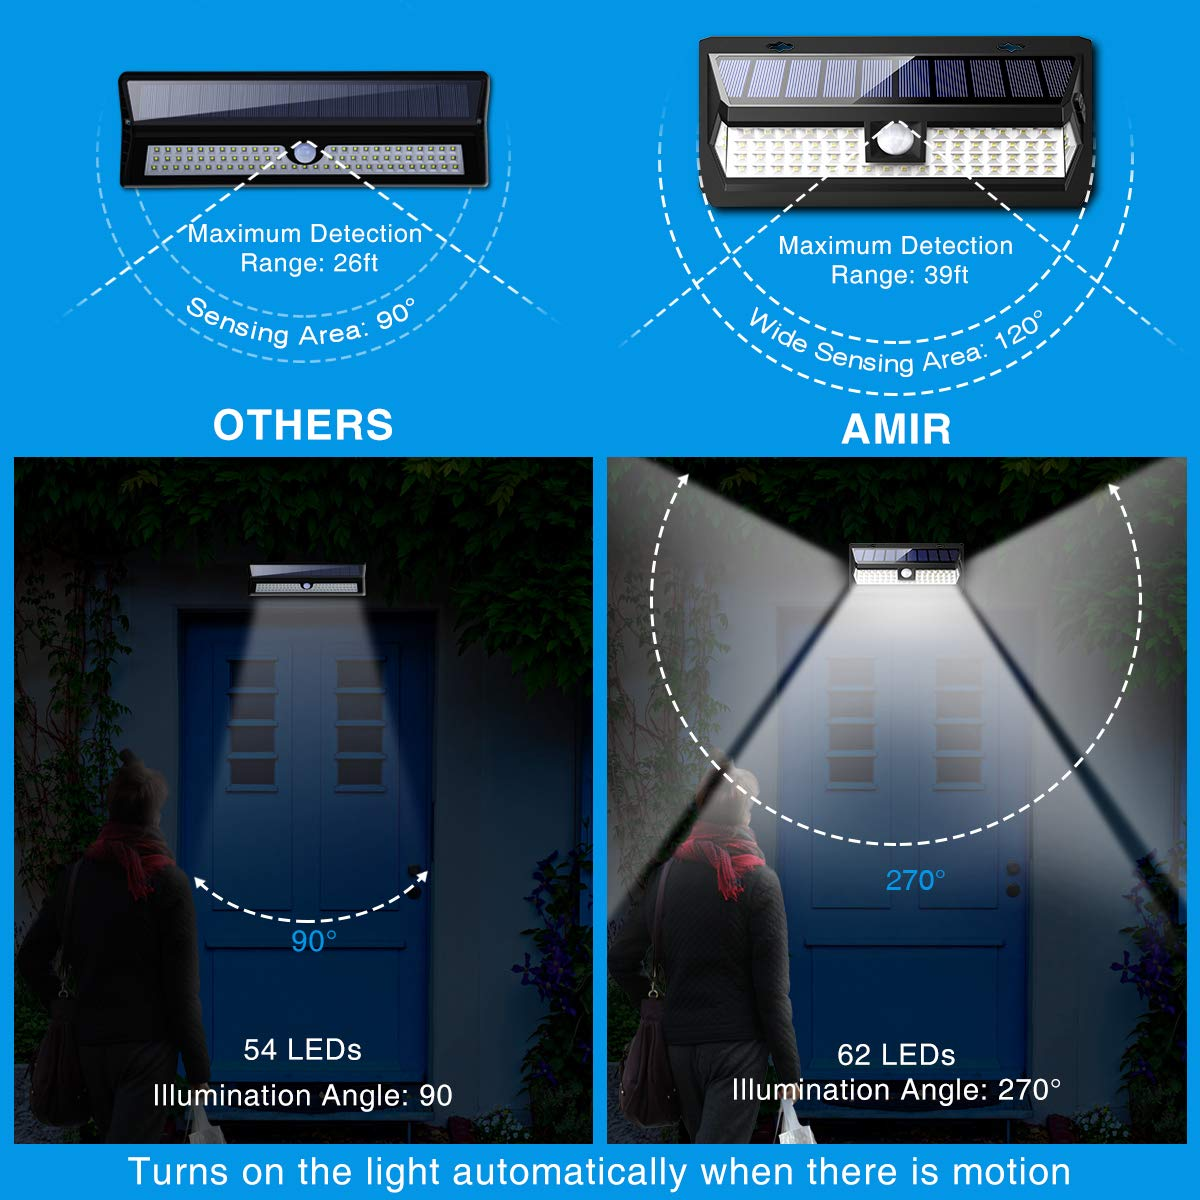 Amir Solar Lights Outdoor 62 Led Super Bright Motion Sensor Wall Pole Mounted Security Light Wiring Diagram Wireless Garden With 3 Modes Waterproof Auto On Off For Front